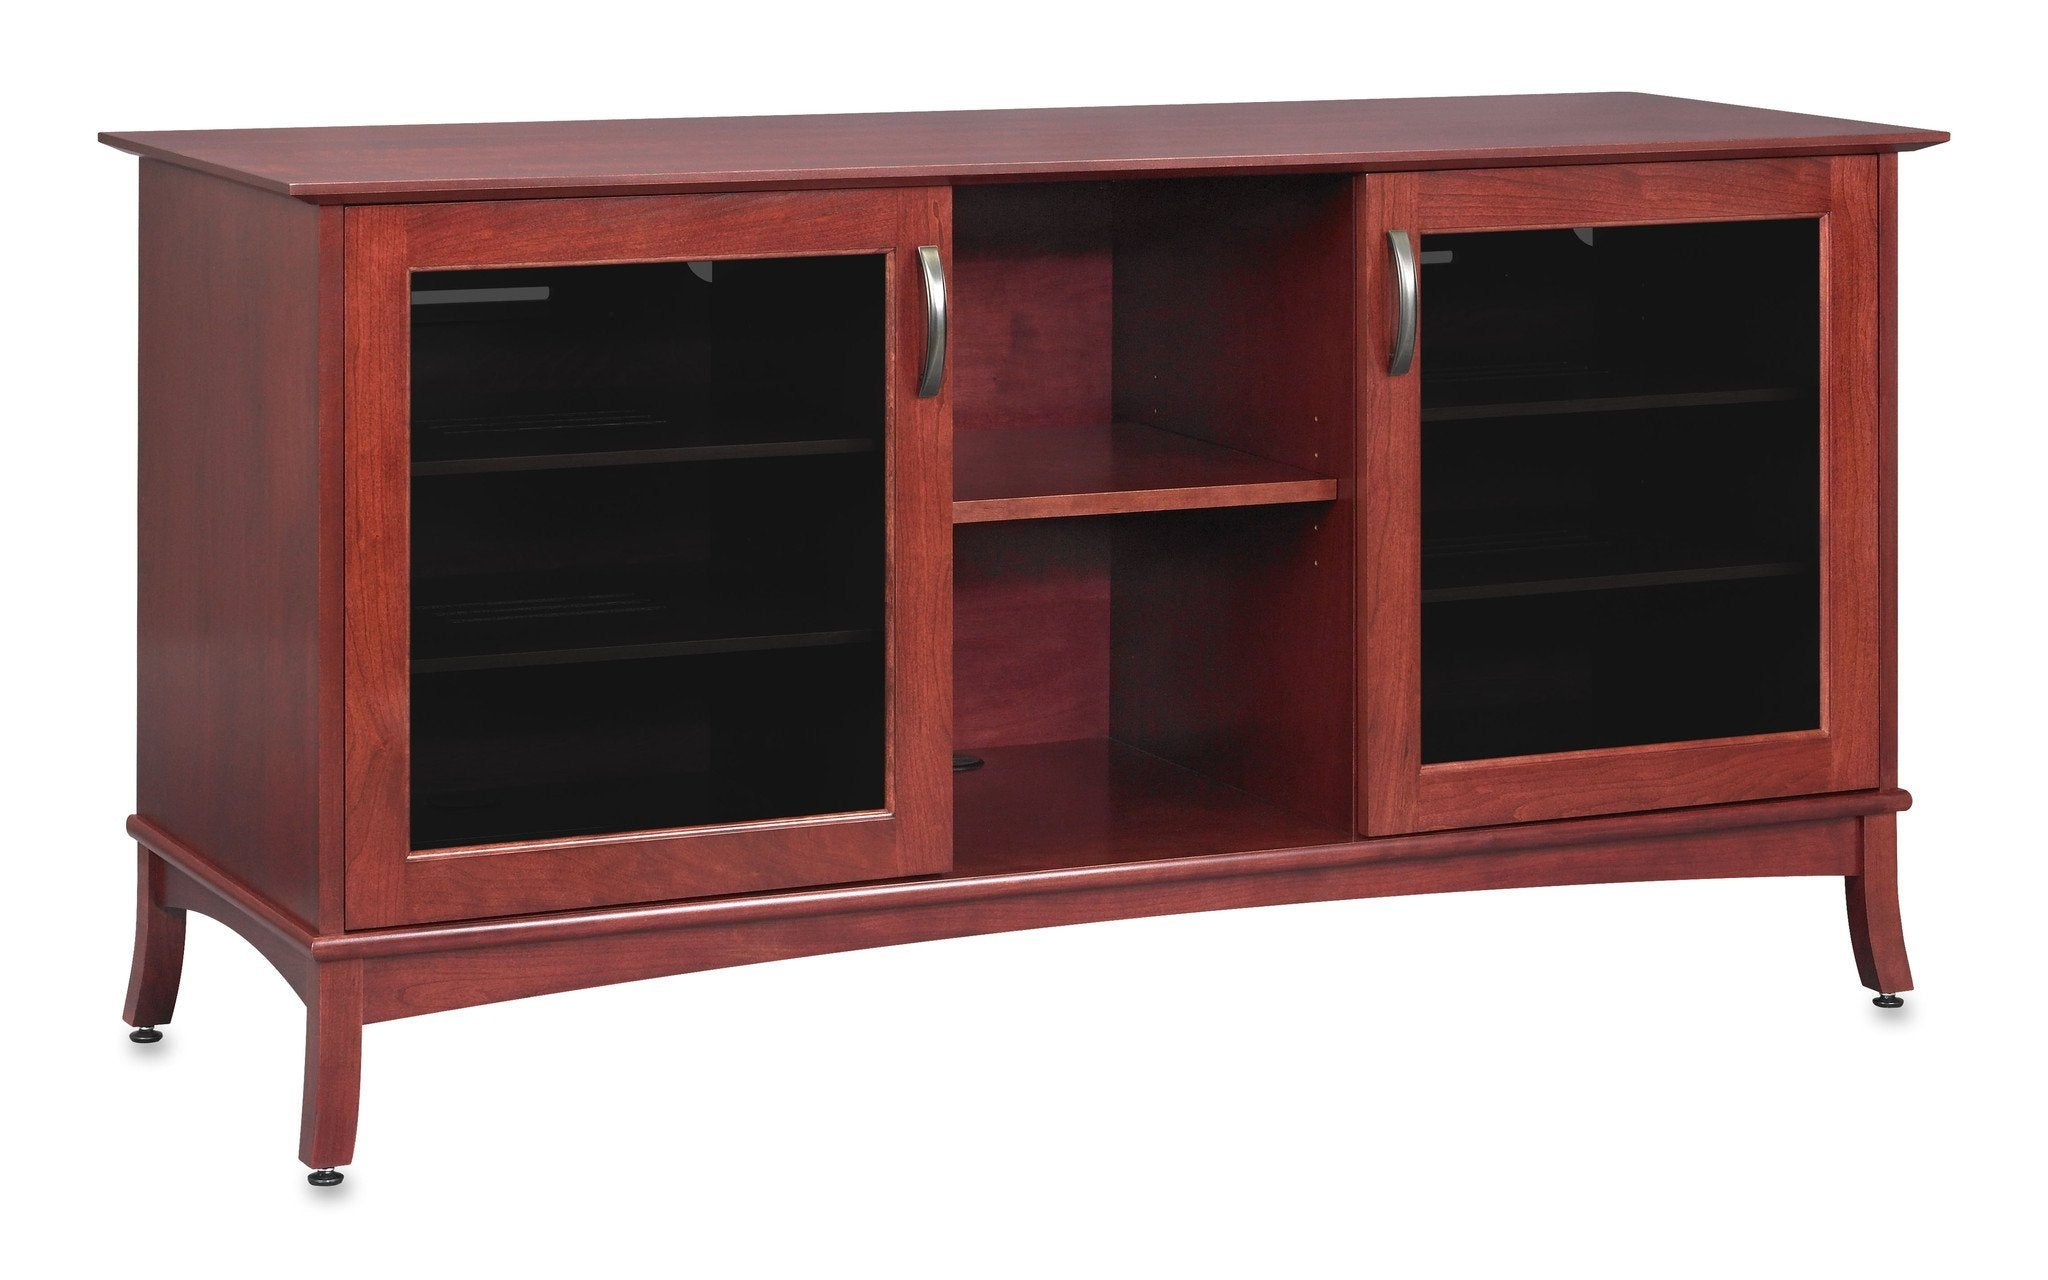 Stand Out Designs : Norwalk in solid wood media console tv stand av